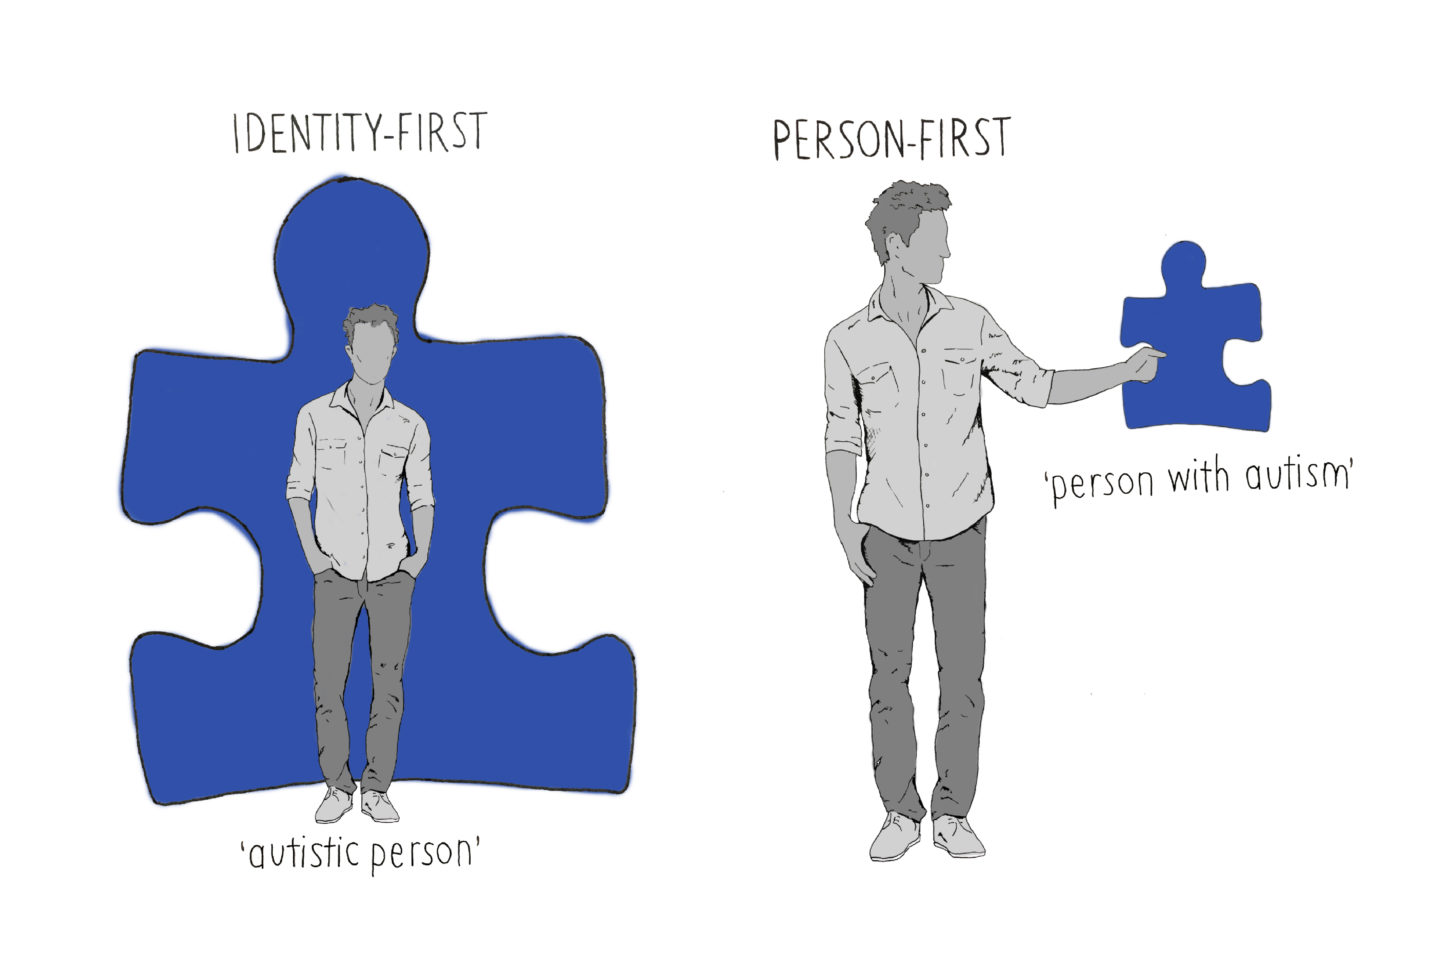 man in front of puzzle piece for identity first and man holding puzzle piece for person first language